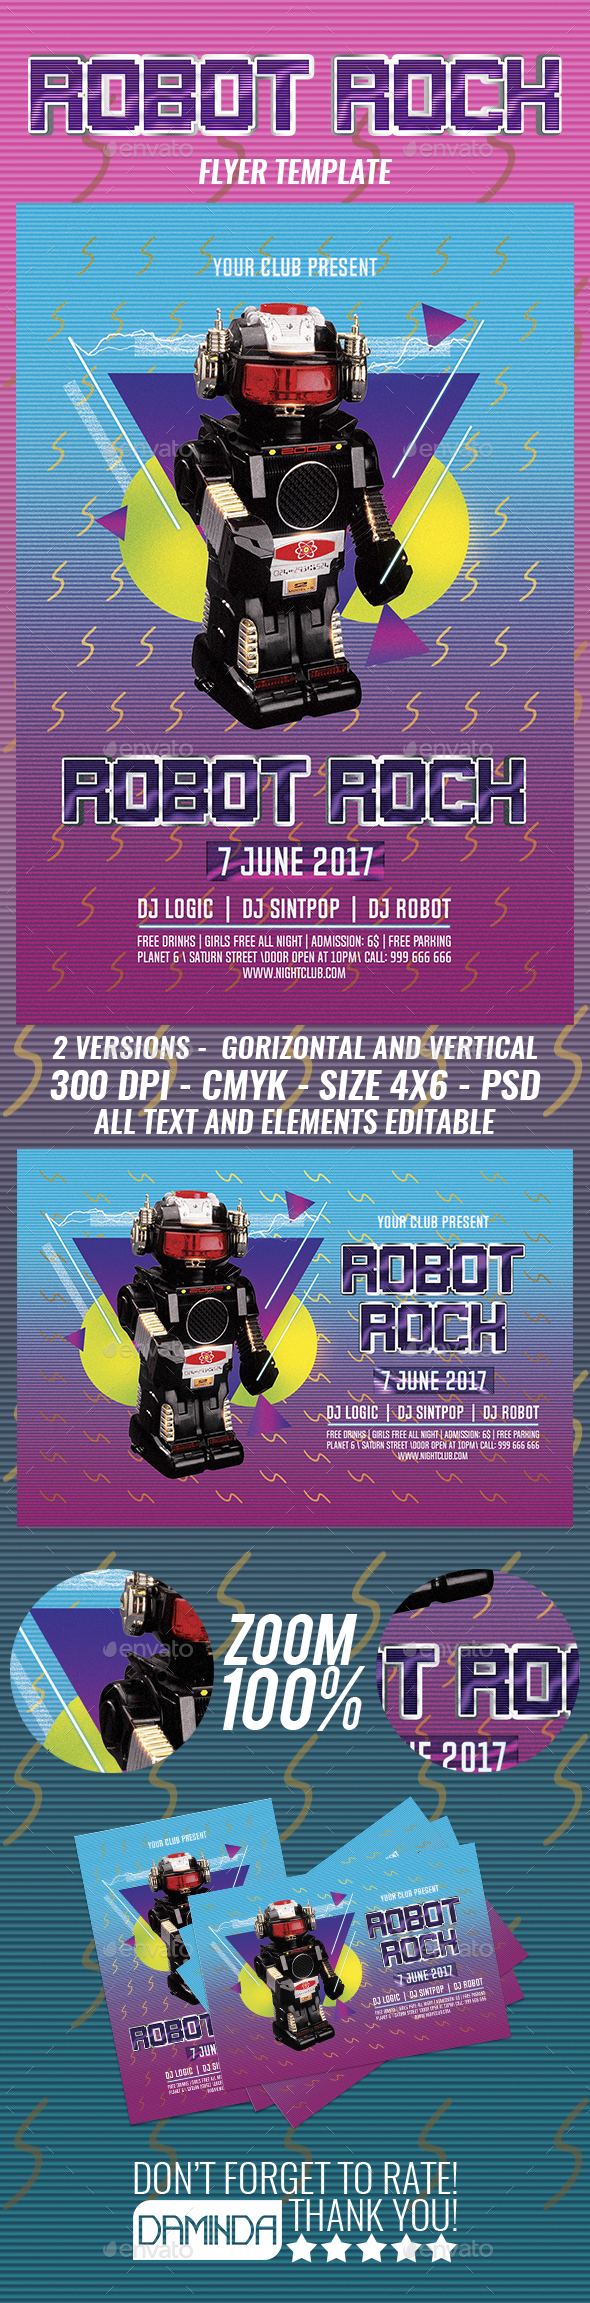 Robot Rock 2 Flyer Template - Clubs & Parties Events